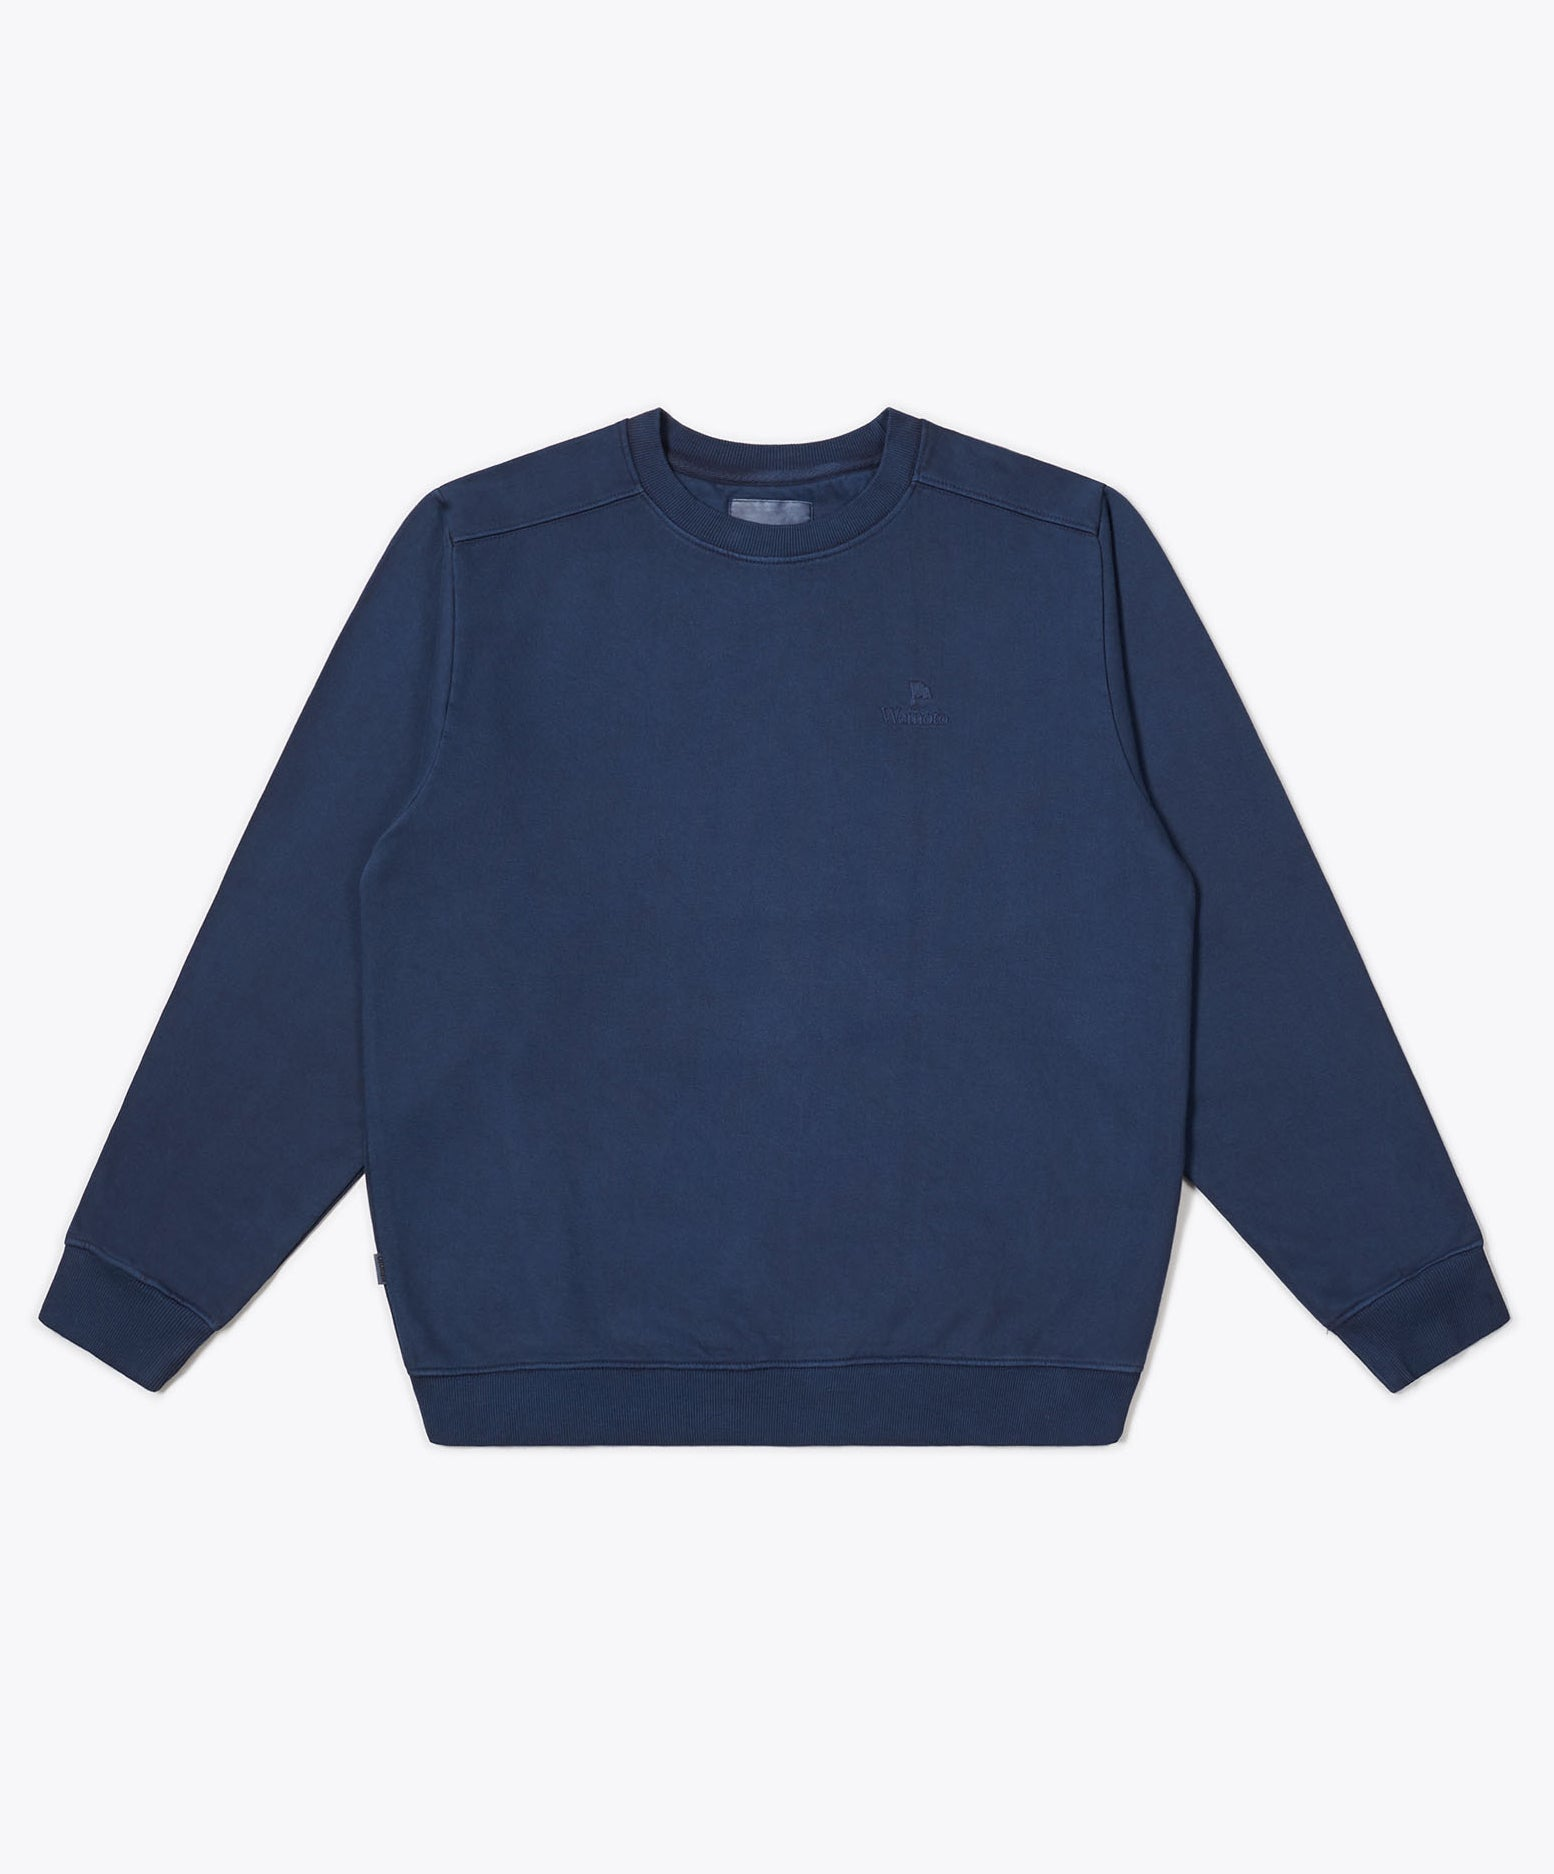 Carter Navy Blue Sweat Shirt